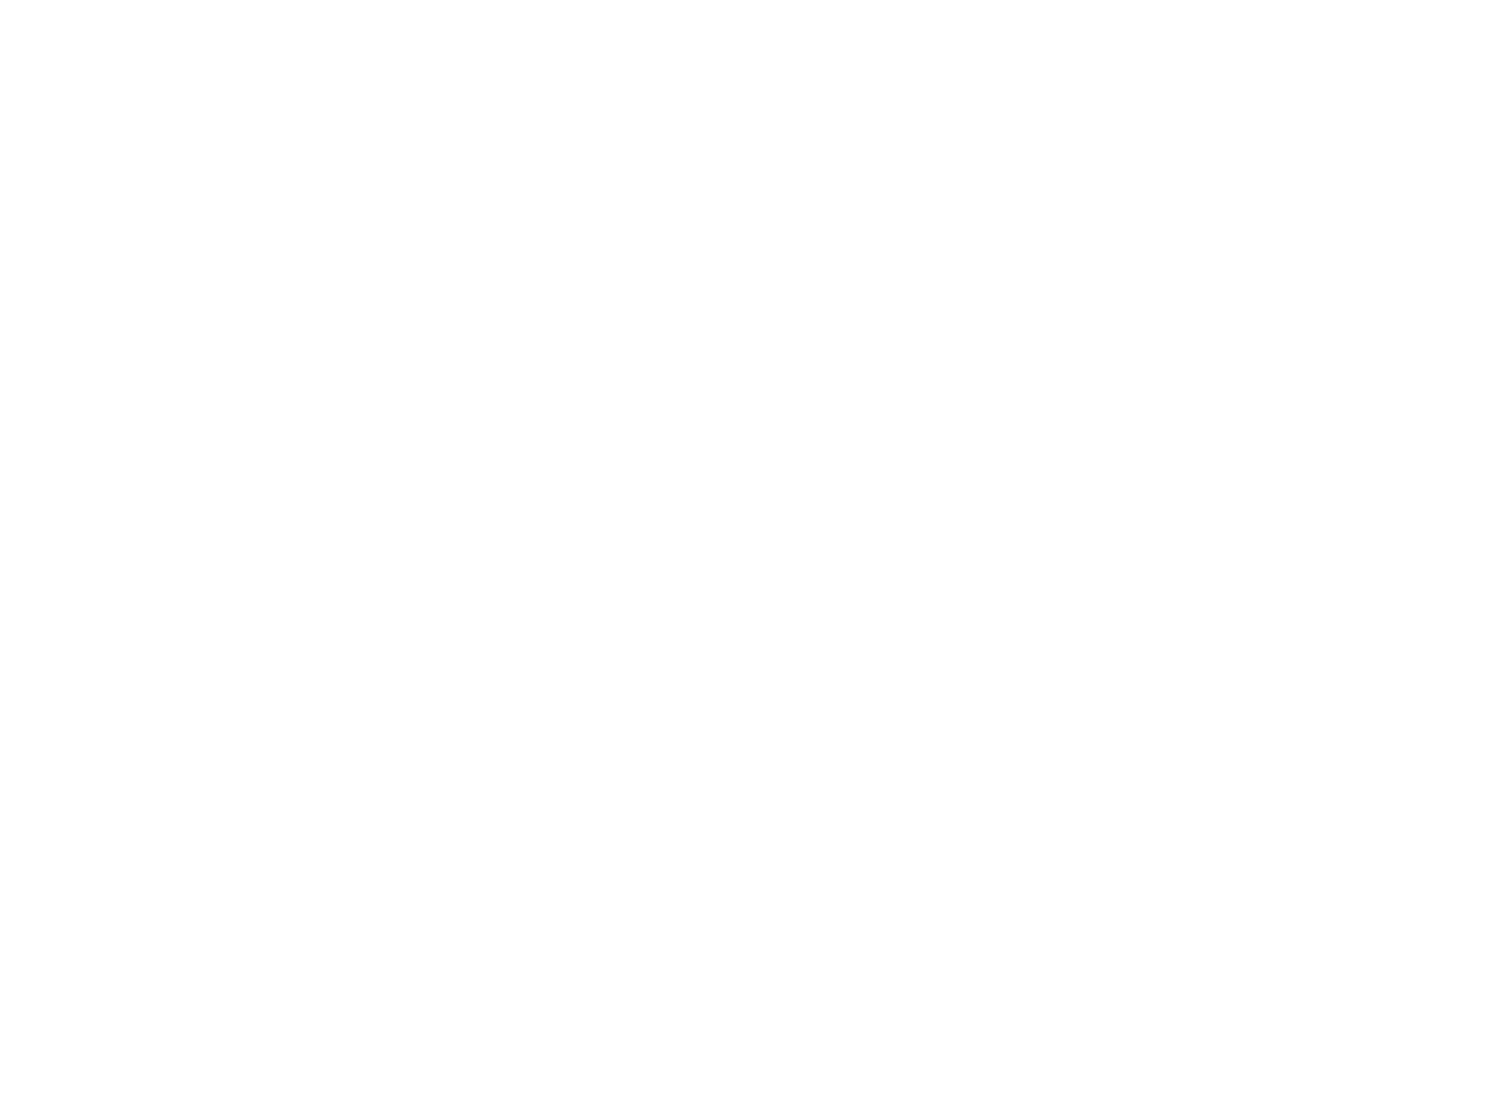 Empire Property Group